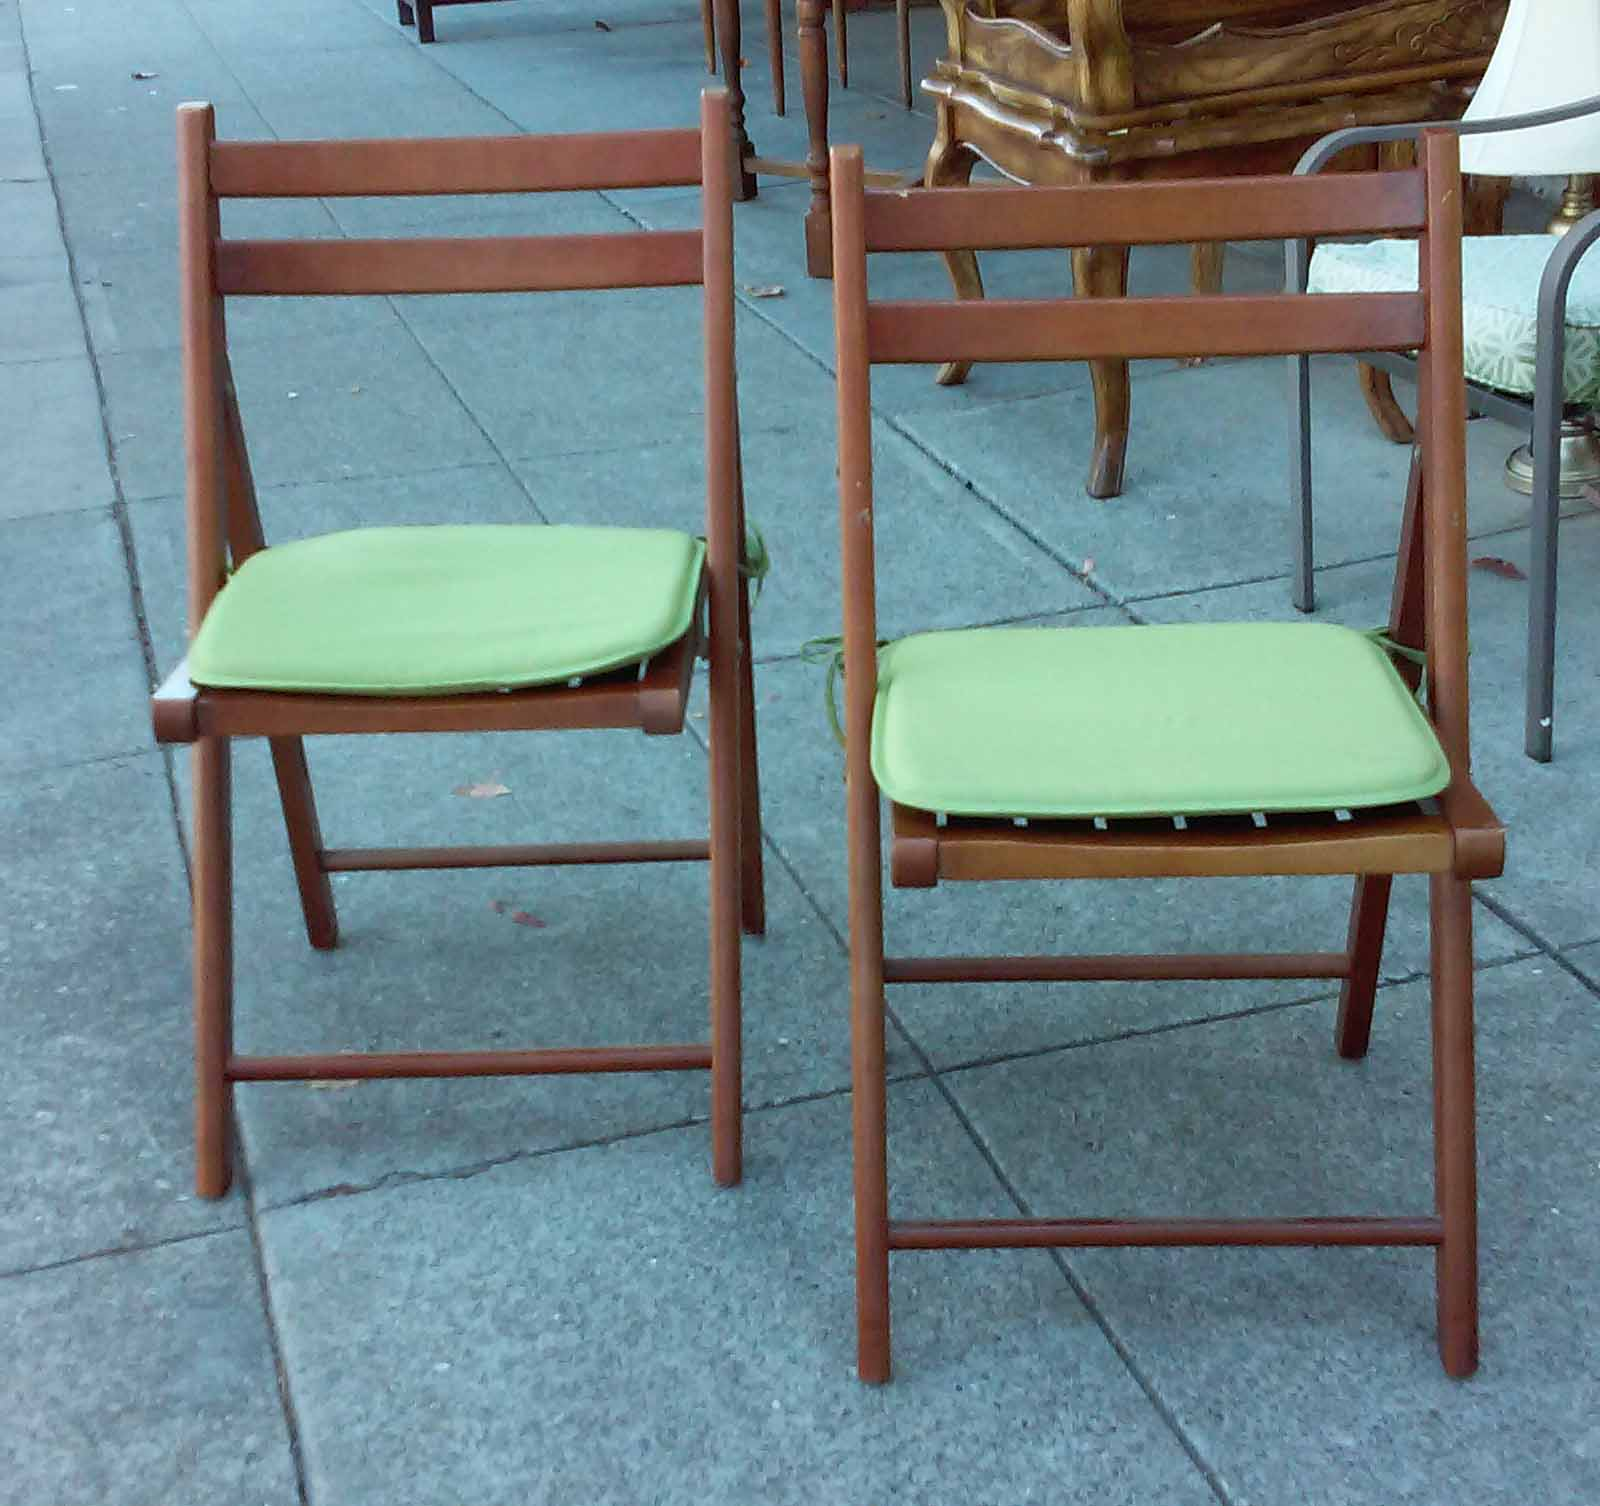 UHURU FURNITURE & COLLECTIBLES SOLD World Market Folding Chairs $15